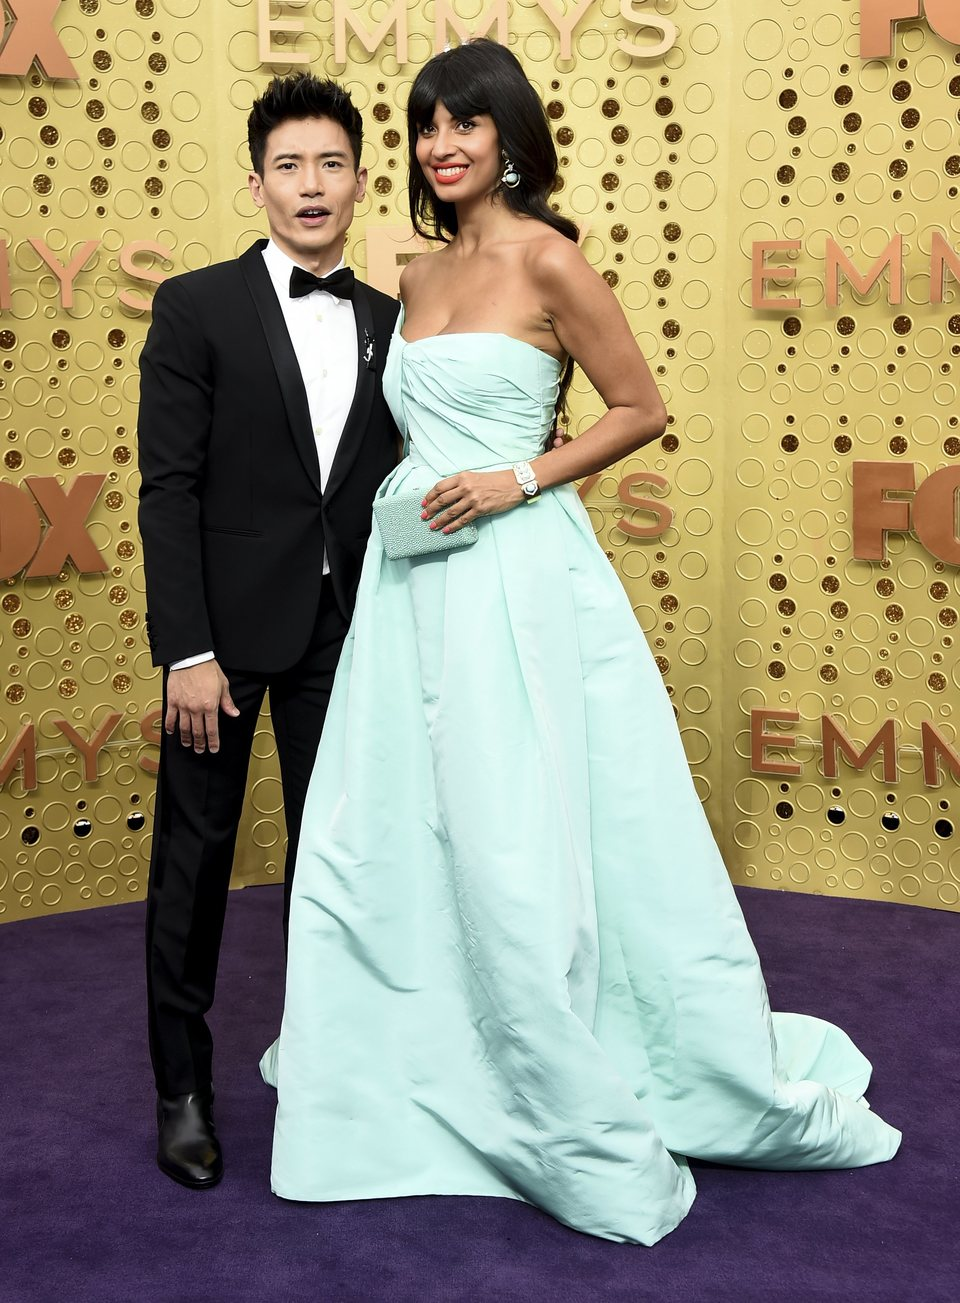 Manny Jacinto and Jameela Jamil at the Emmy 2019 red carpet